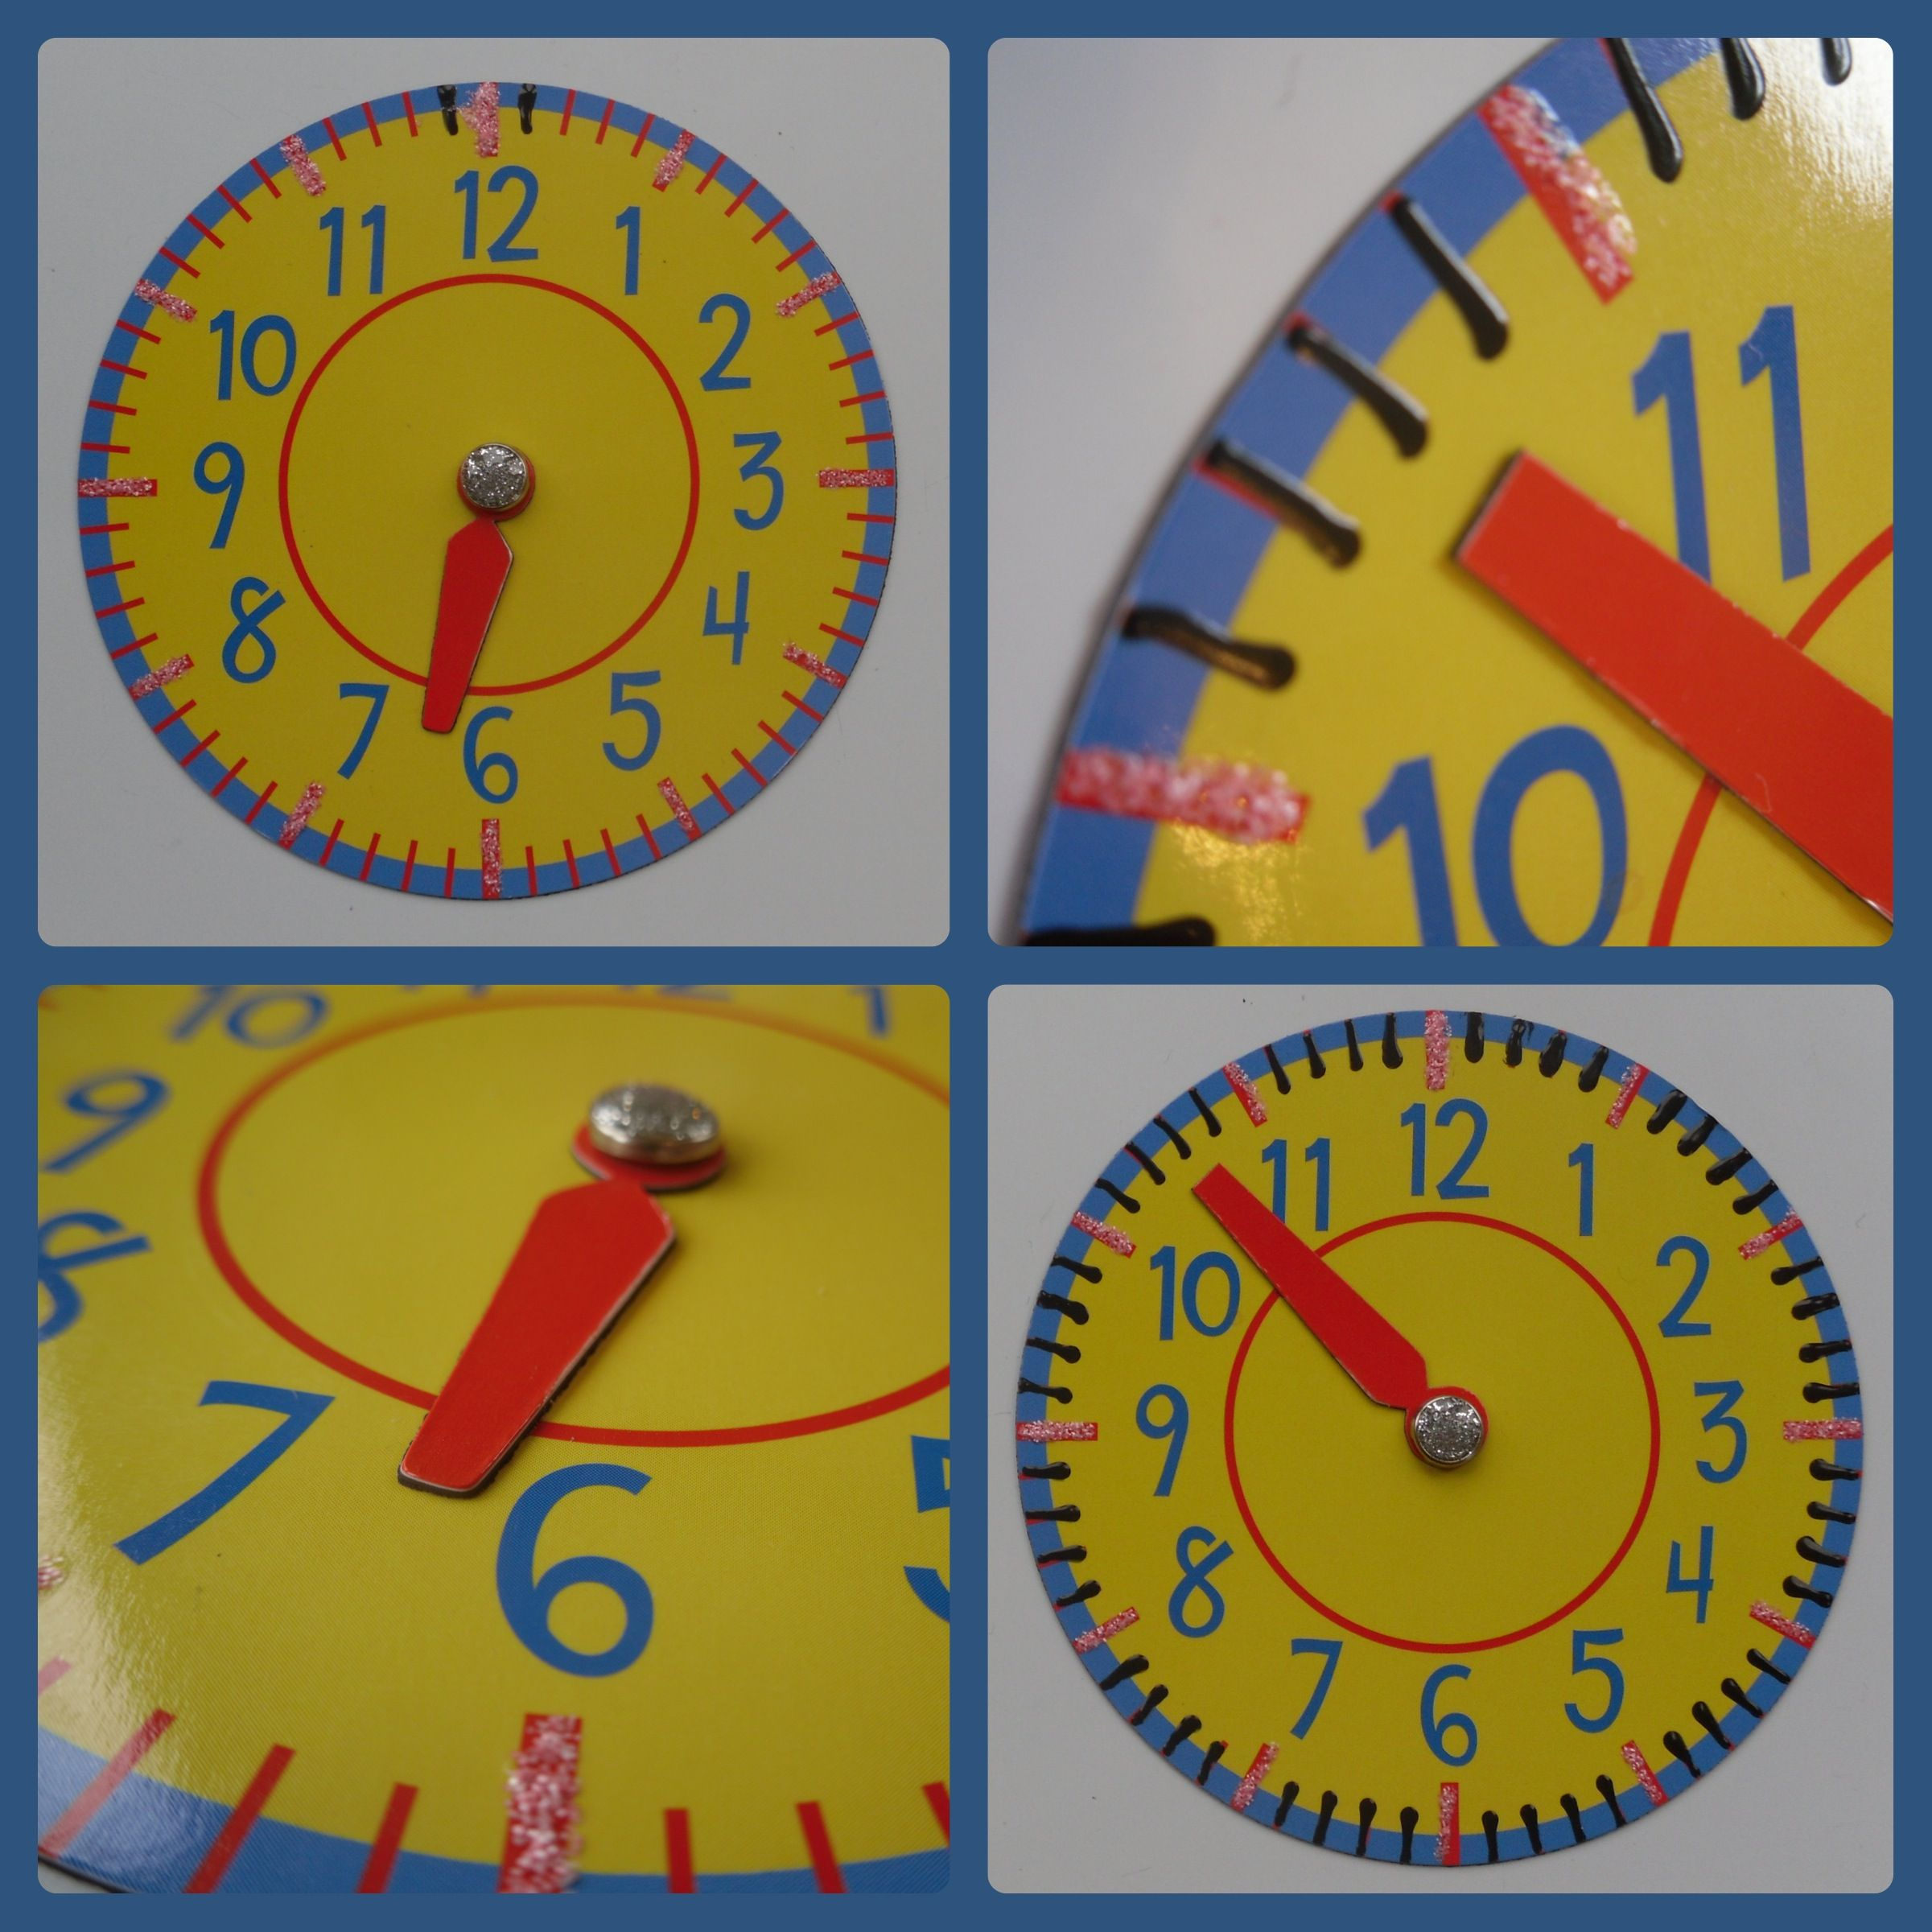 Clockfaces Amp Method For Teaching Time Concepts With